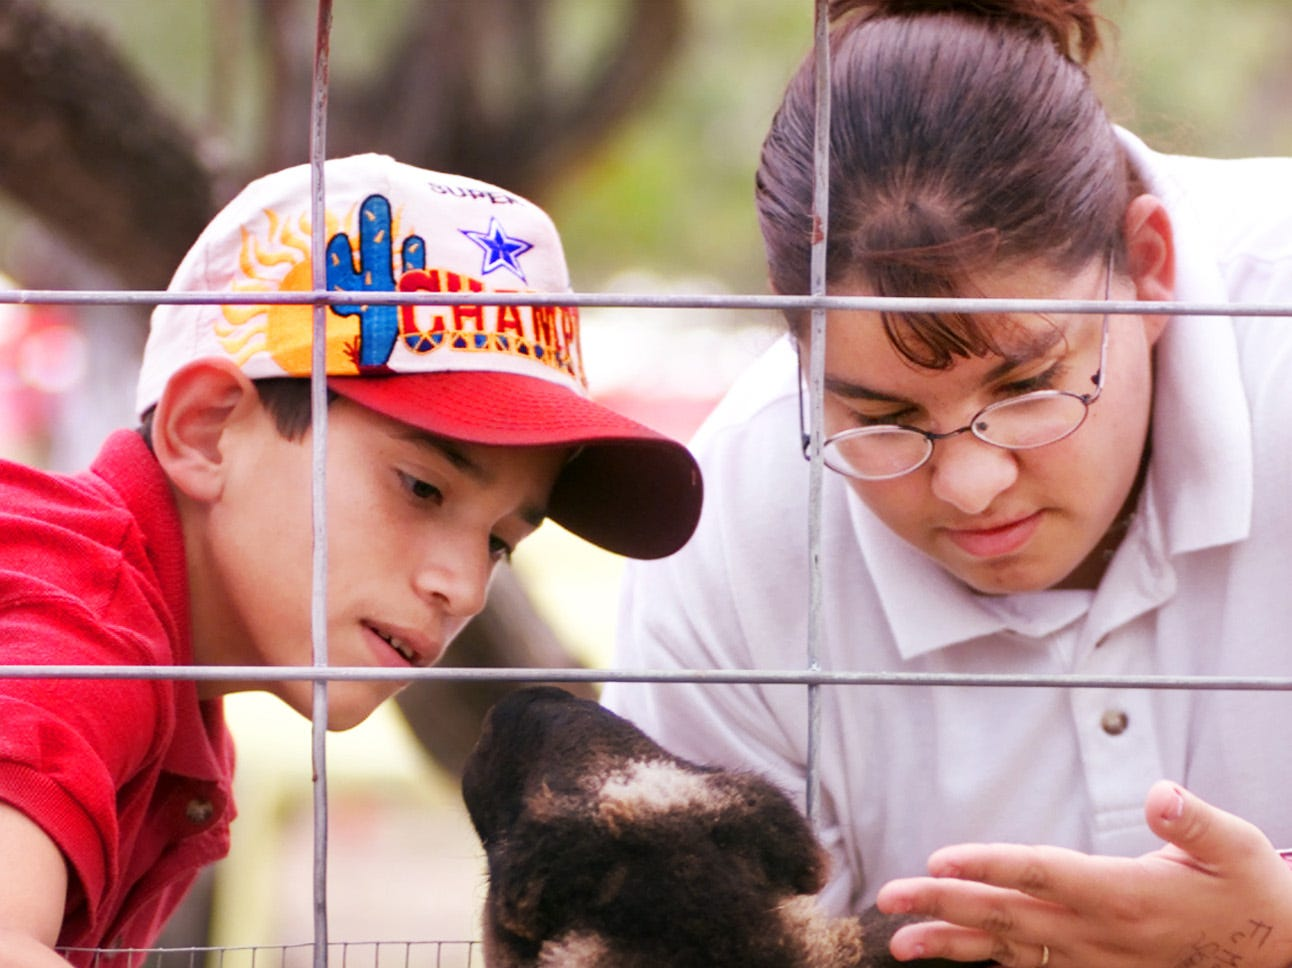 14-yr-old Chris Garcia (left), and his sister 15-yr-old Frances Garcia (right), with a sheep in the petting zoo inside Texas Sky Festival Park in October 2000.